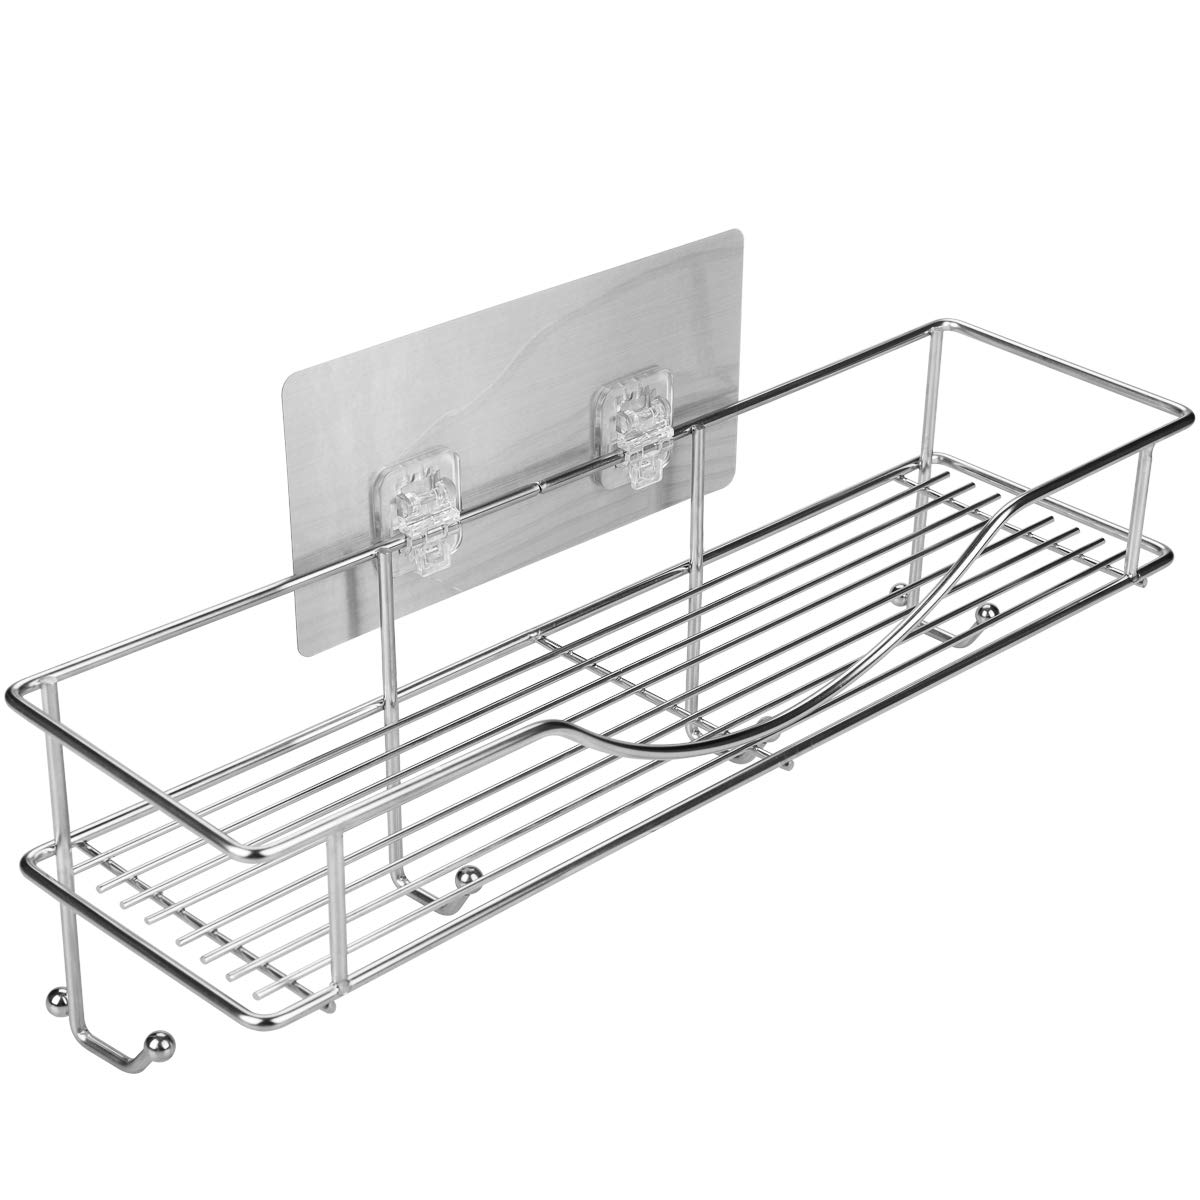 AISHN Bathroom Towel Shelf/Kitchen Holder, 304 Stainless Steel Vacuum Super Silicone Storage Rack, Space-Saving Rack Includes 4 Hooks